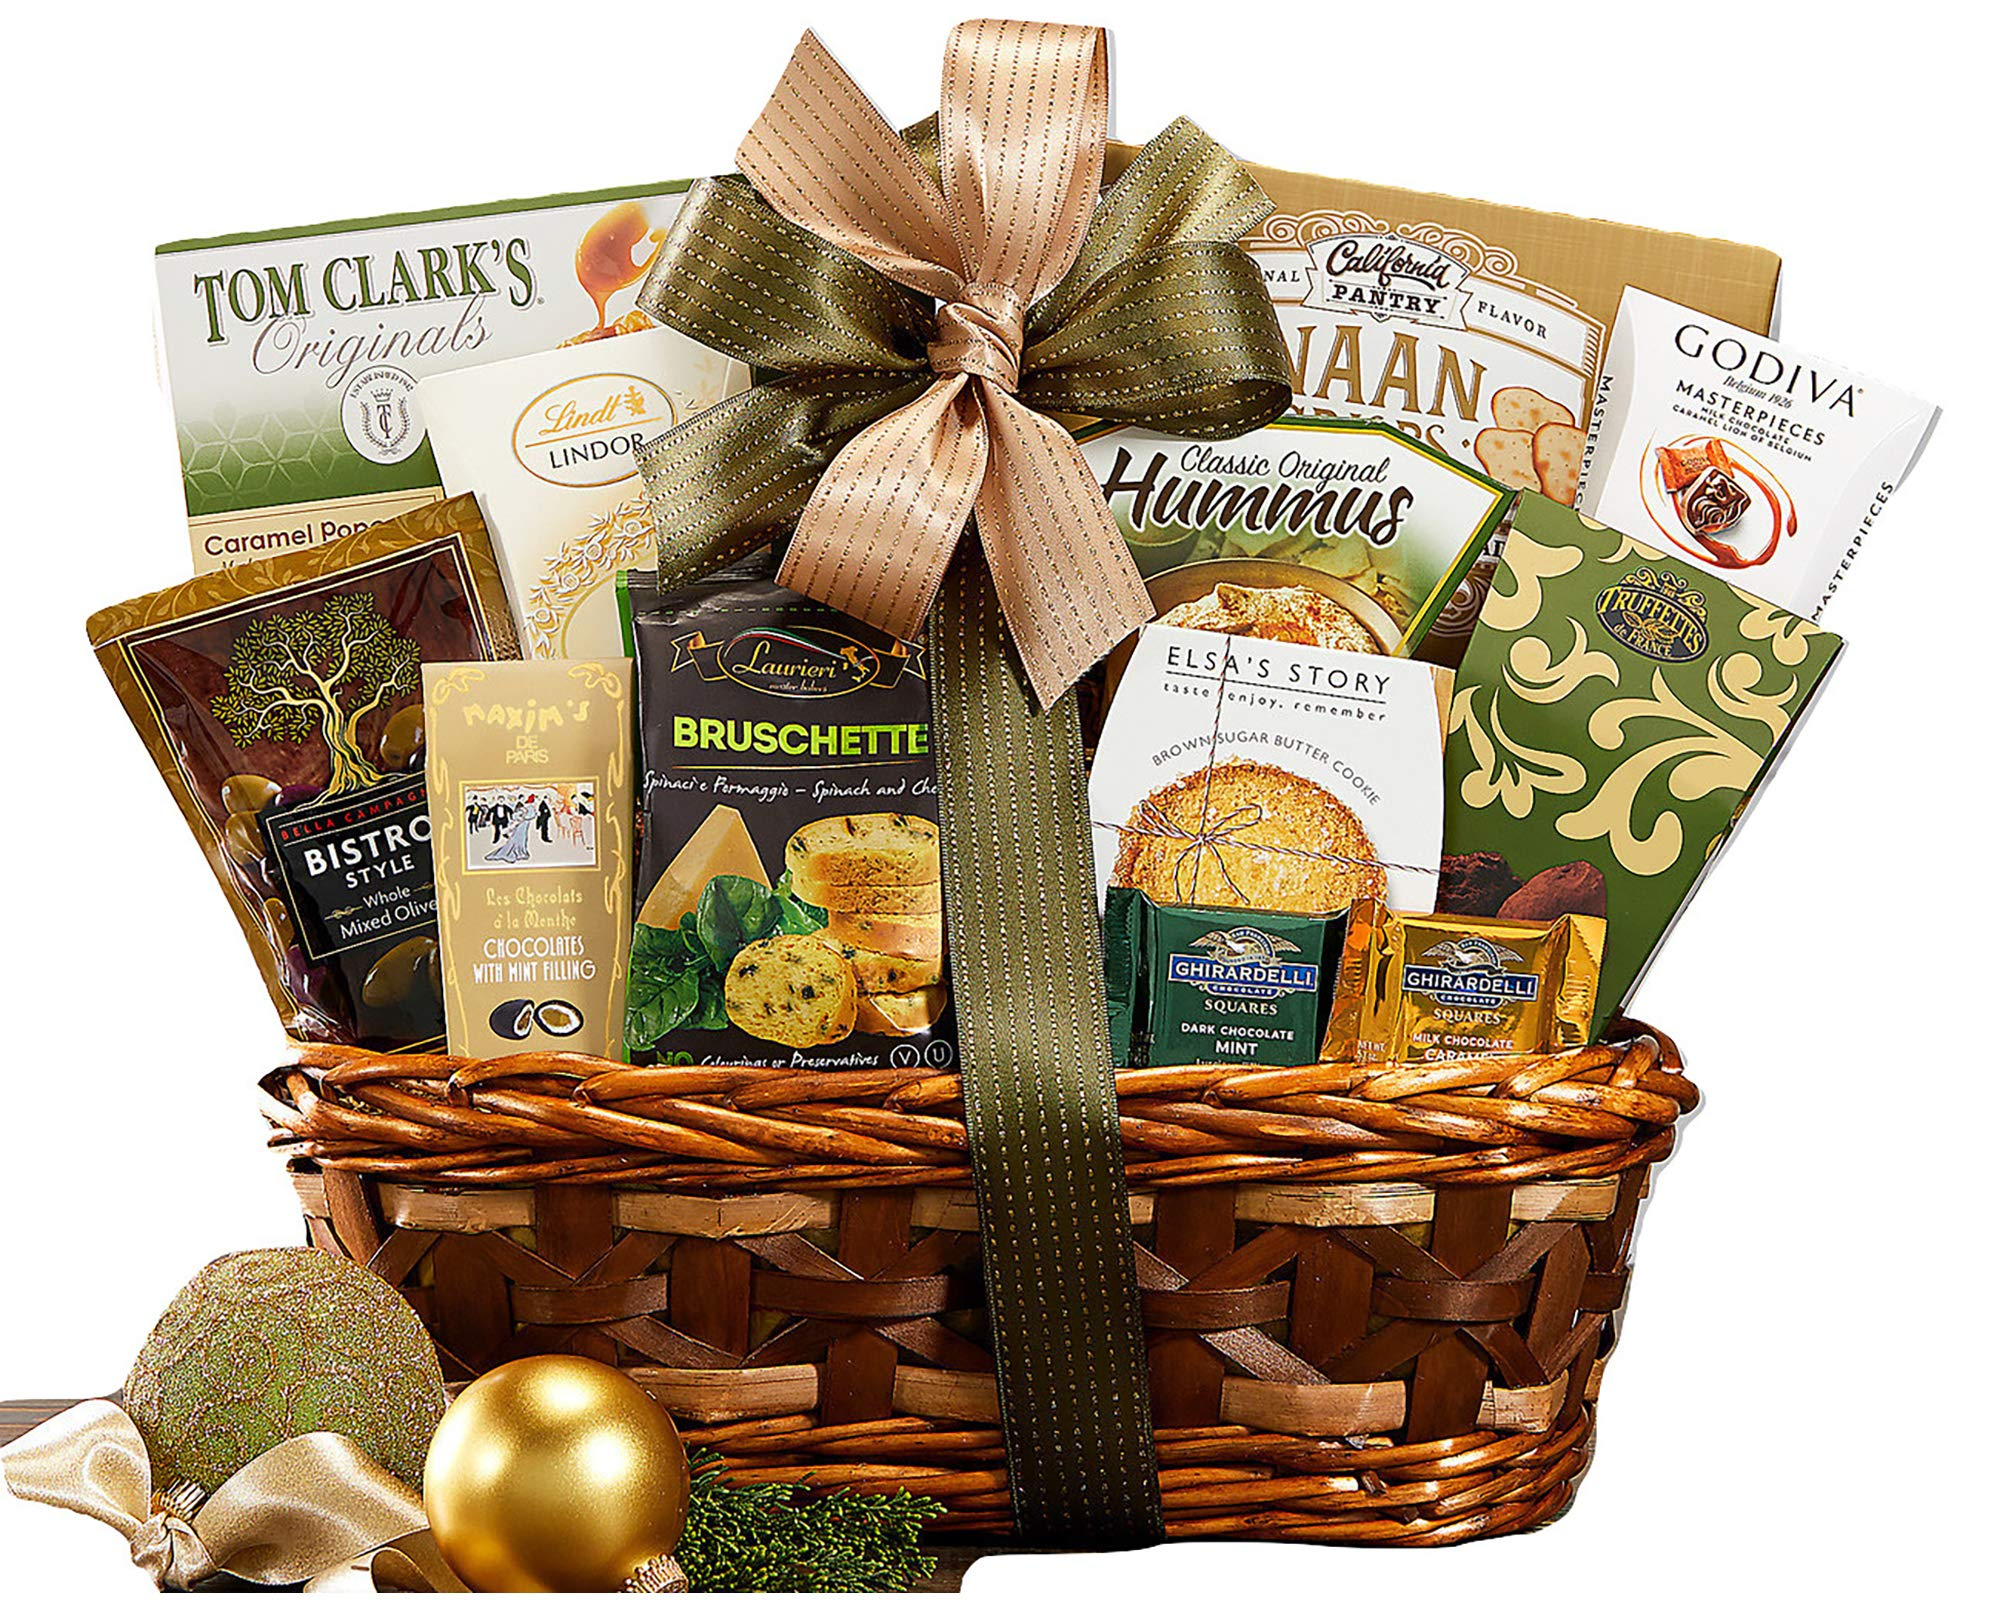 Remarkable Gift Co. Sweet and Savory Collection Favorite Gift Basket With Cookies, Crackers, Chocolate and More by Remarkable Gift Co. (Image #1)